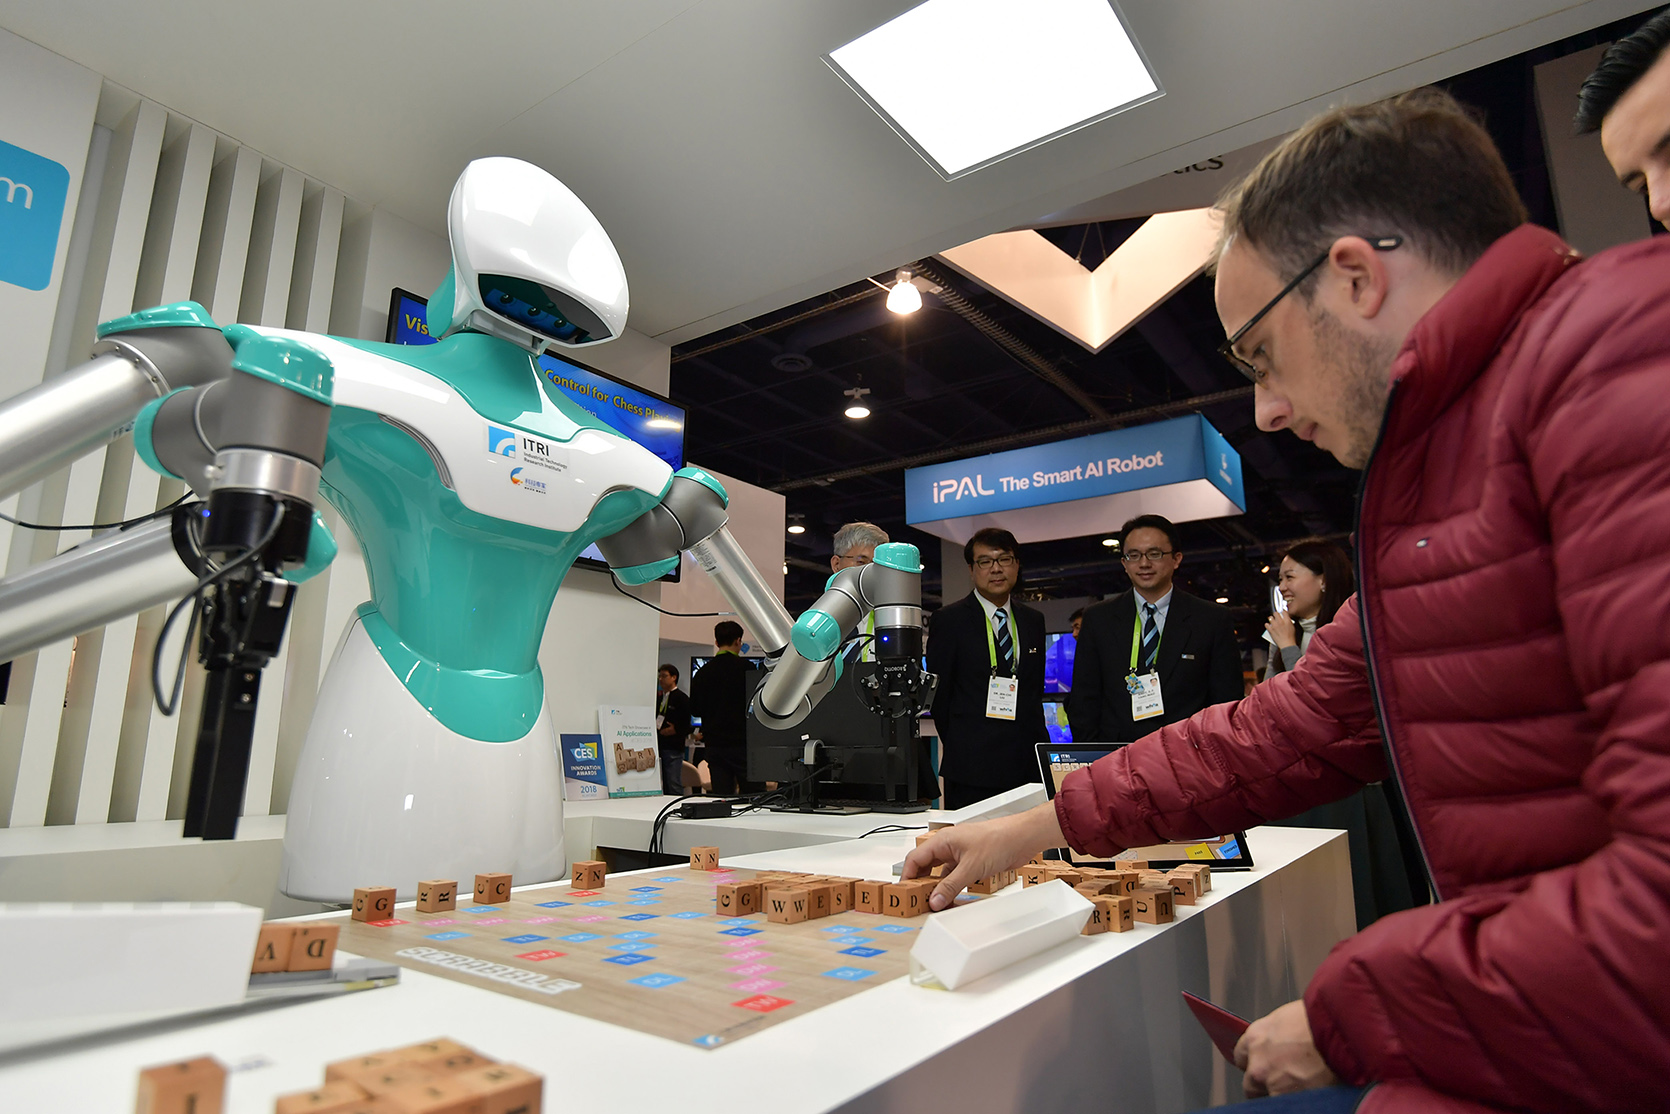 ITRI's IVS robot has attracted numerous CES visitors to play Scrabble during the CES show. (Credit: ITRI)